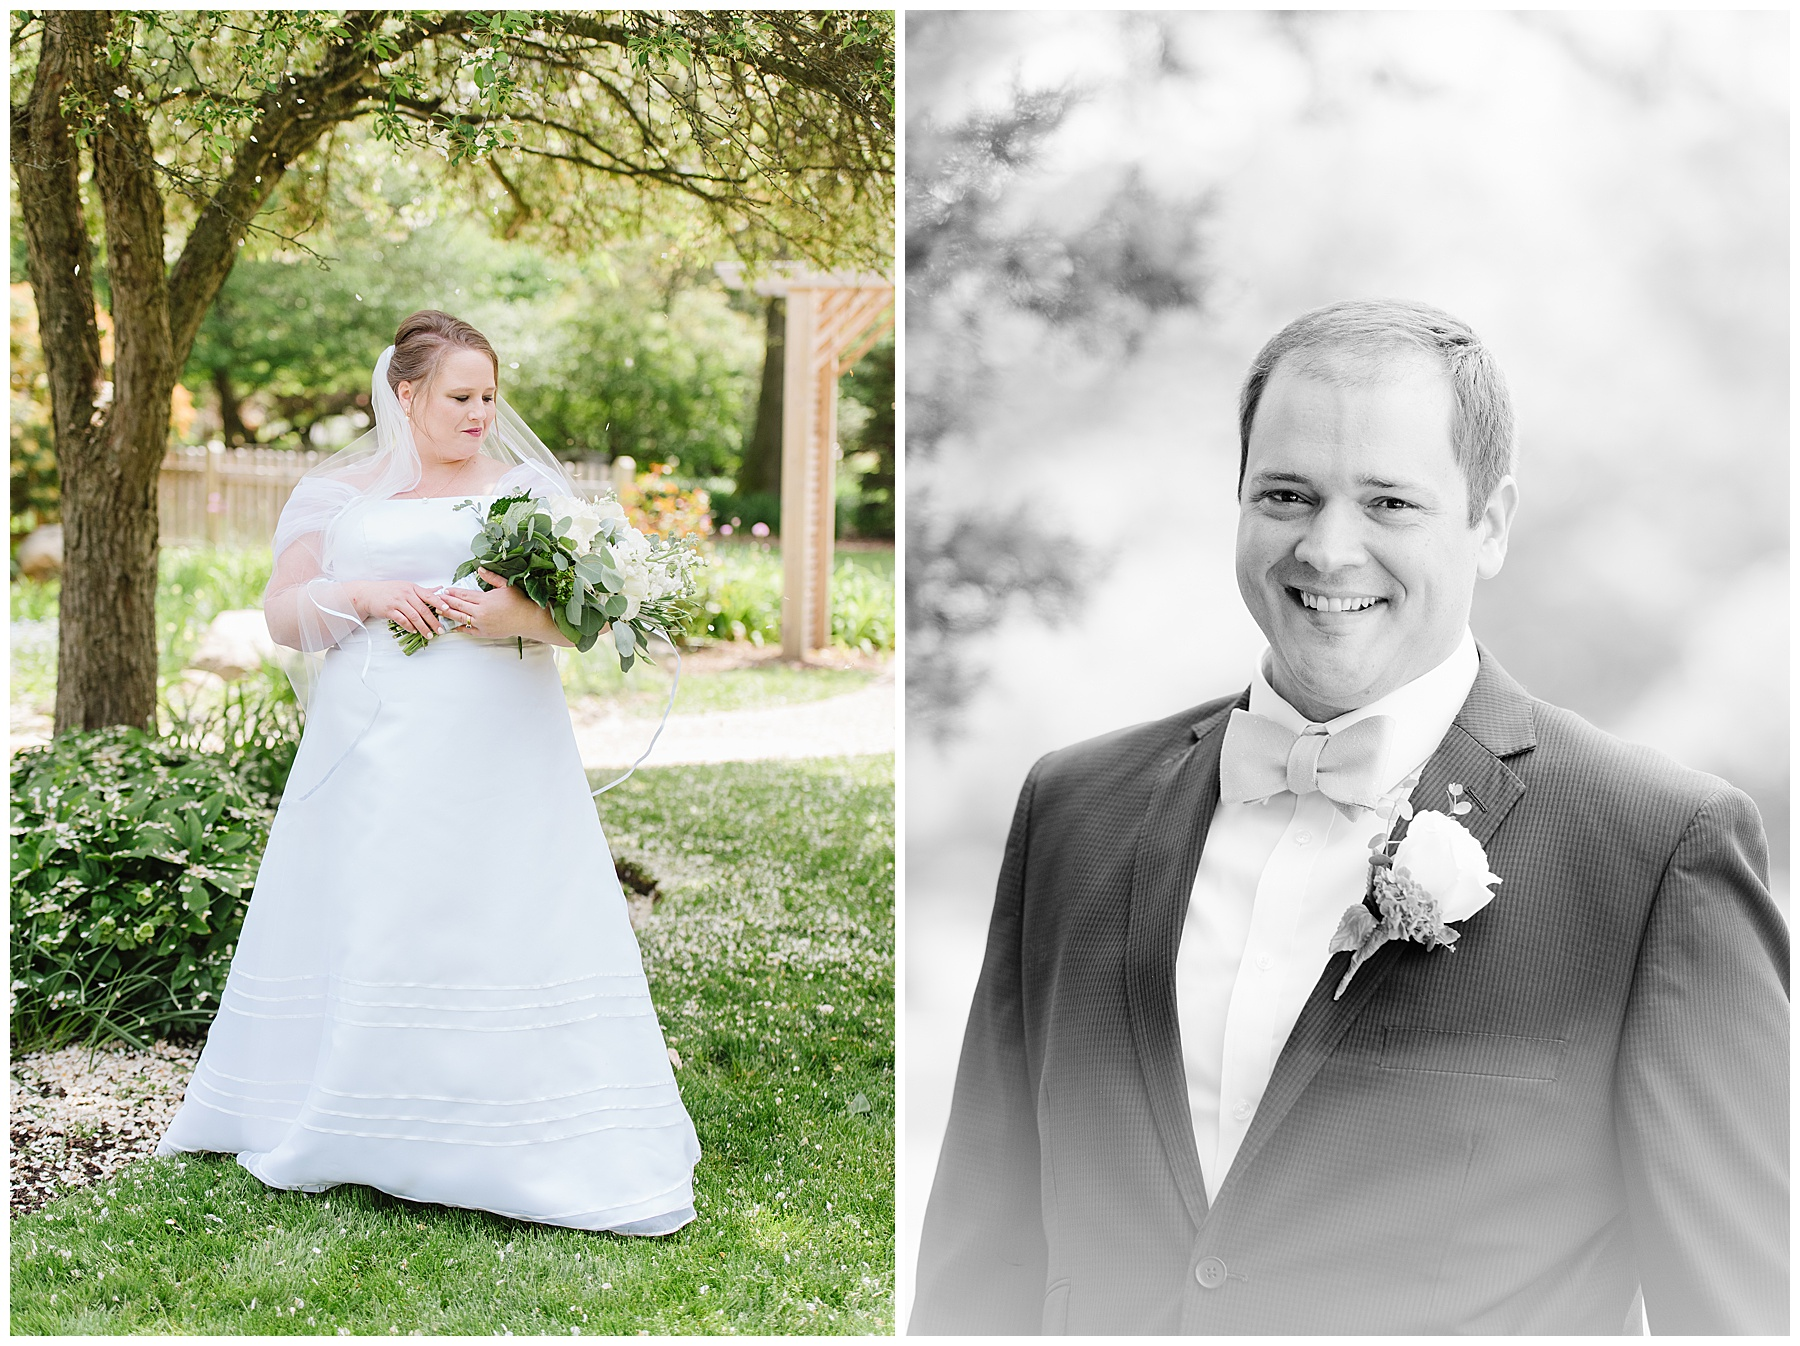 foster park fort wayne indiana wedding photographer_0199